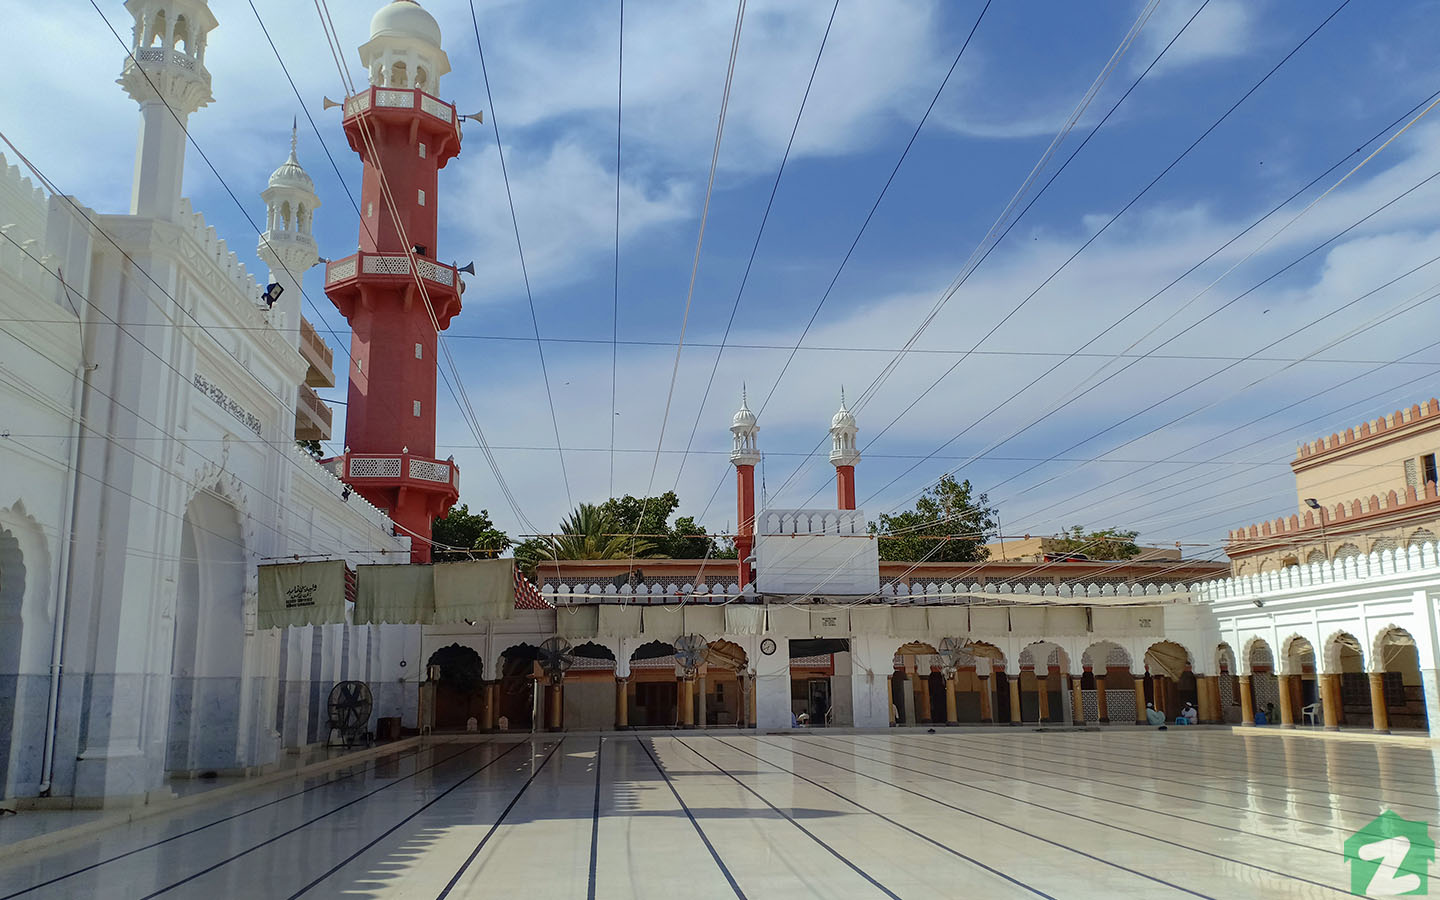 Binori Mosque is a very popular mosque among the residents